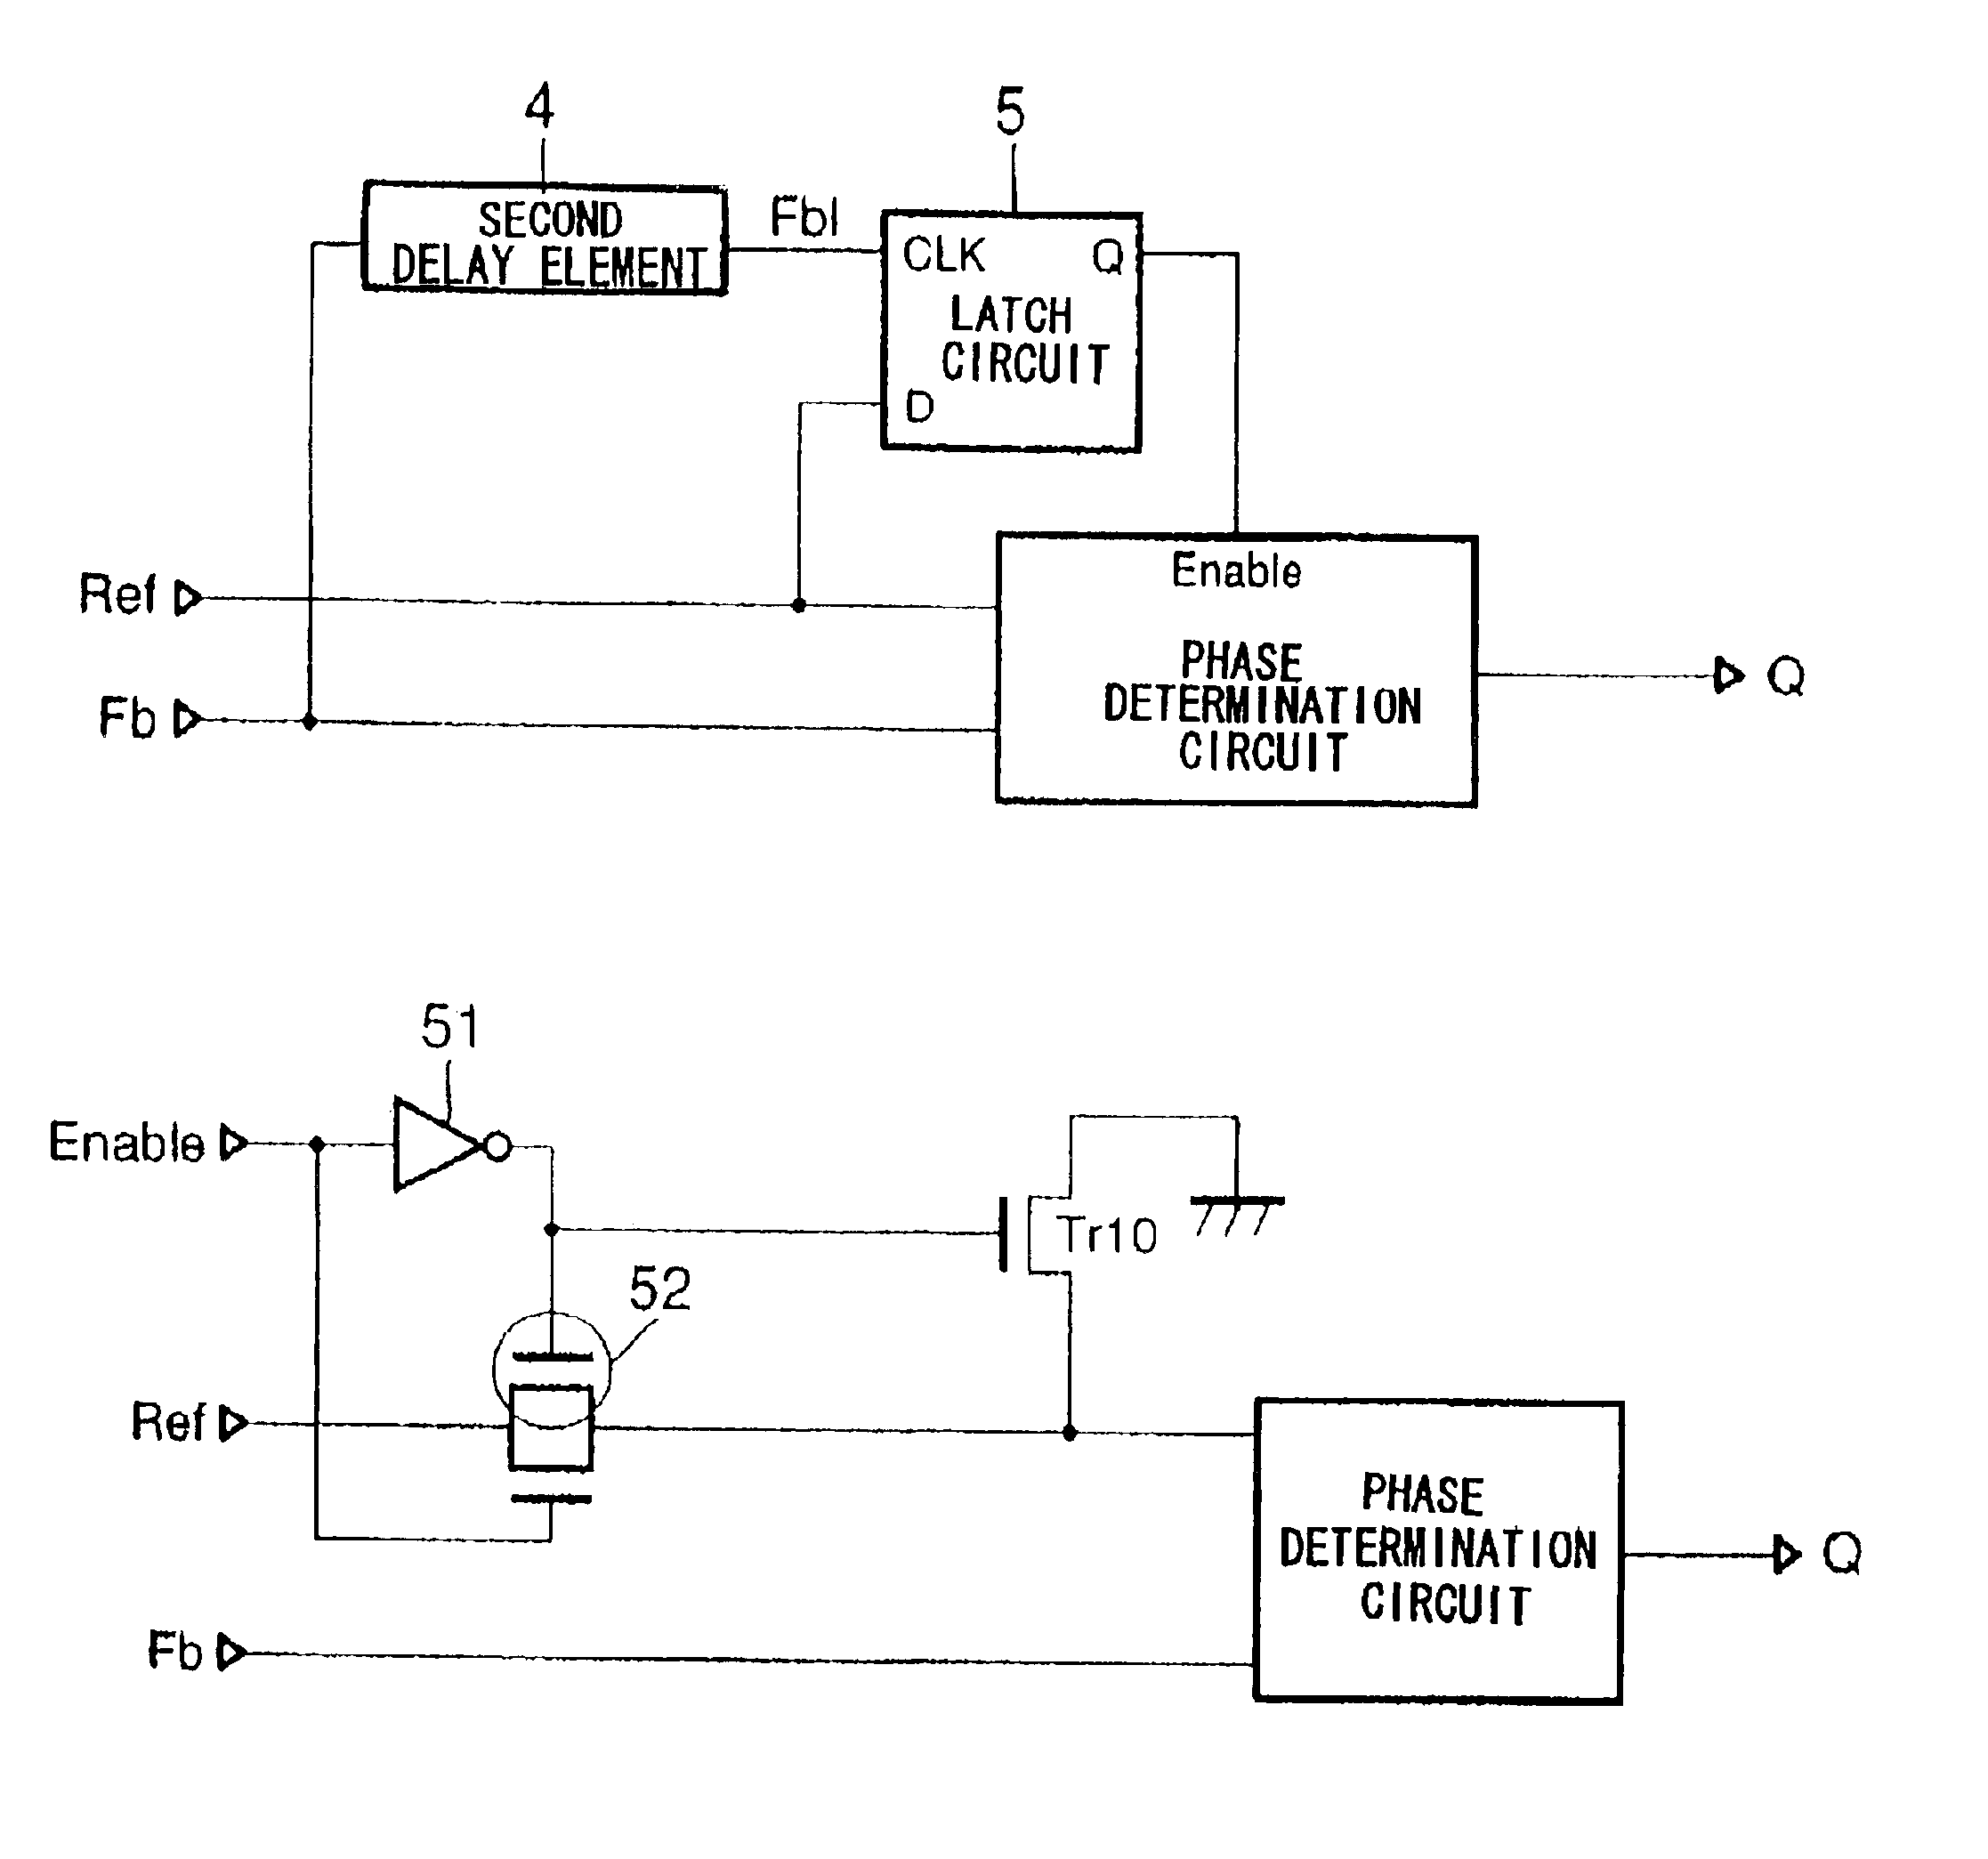 Patent Us6812759 Dll Circuit Capable Of Preventing Locking In An Latching Diagram Drawing